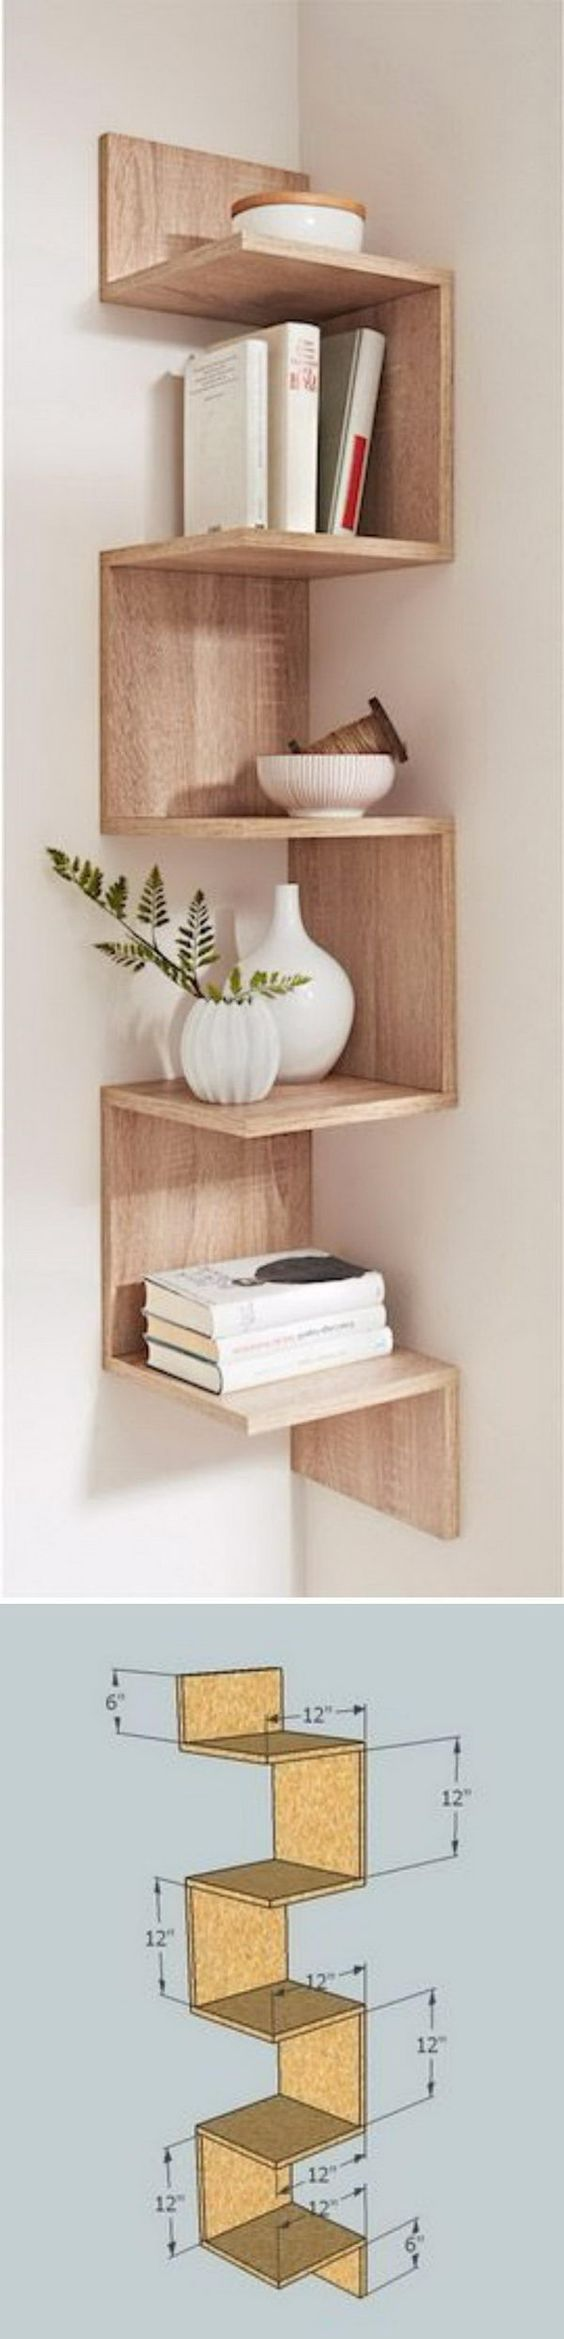 Best 25+ Diy shelving ideas on Pinterest | Wall shelves ...